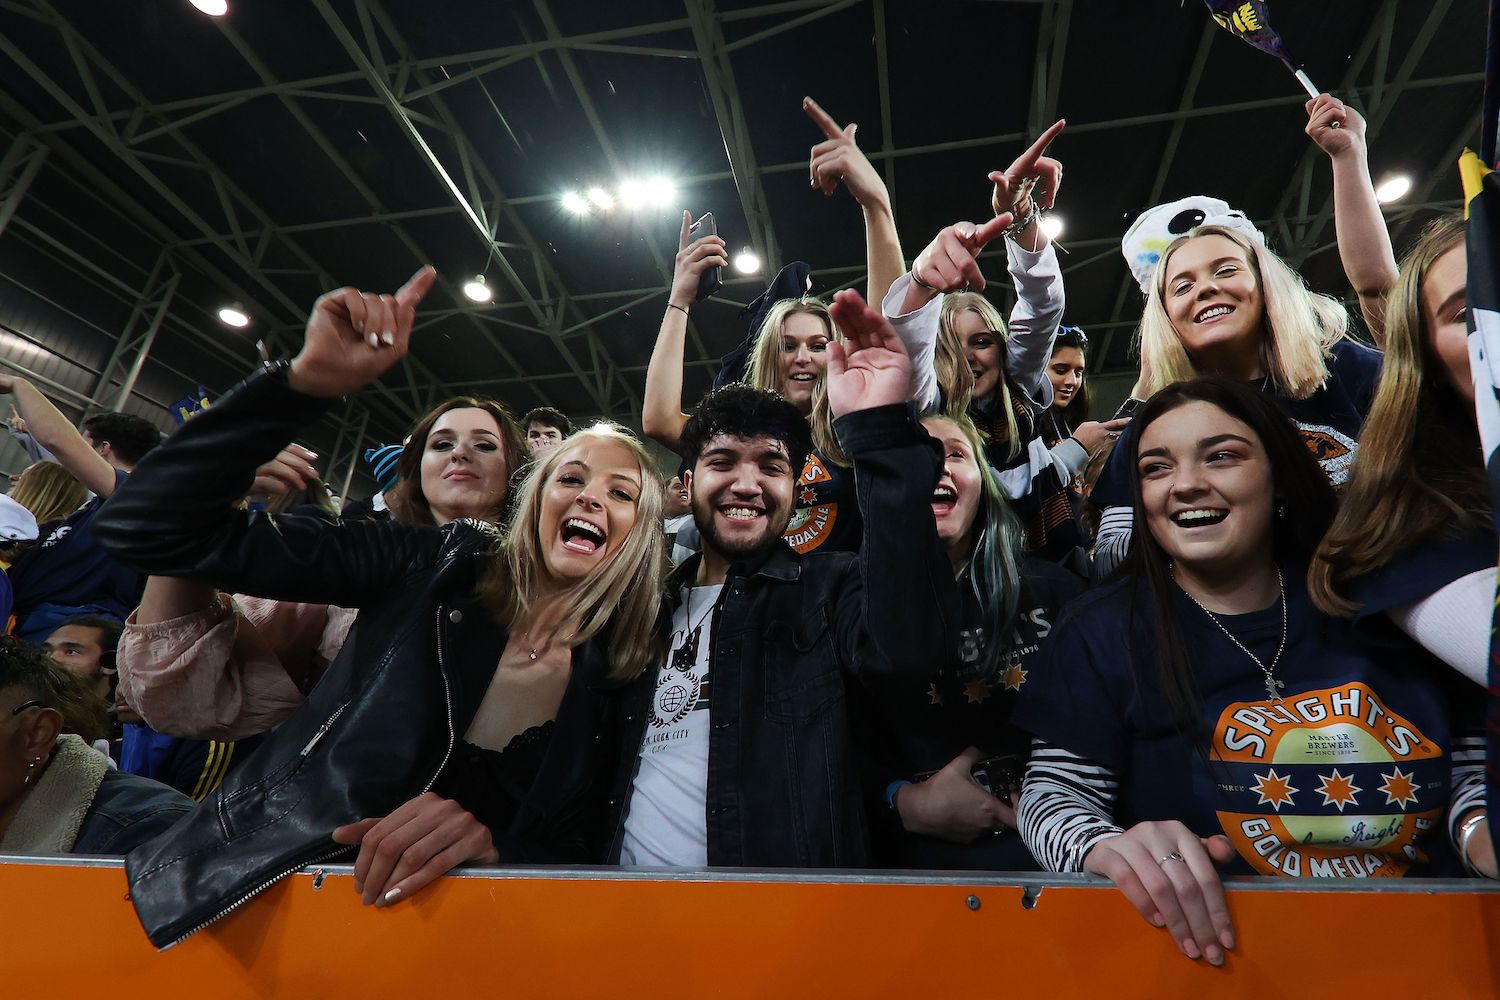 Fans attend the Super Rugby match between the Otago Highlanders and Waikato Chiefs at Forsyth Barr Stadium in Dunedin, New Zealand on Saturday. (AFP Photo)